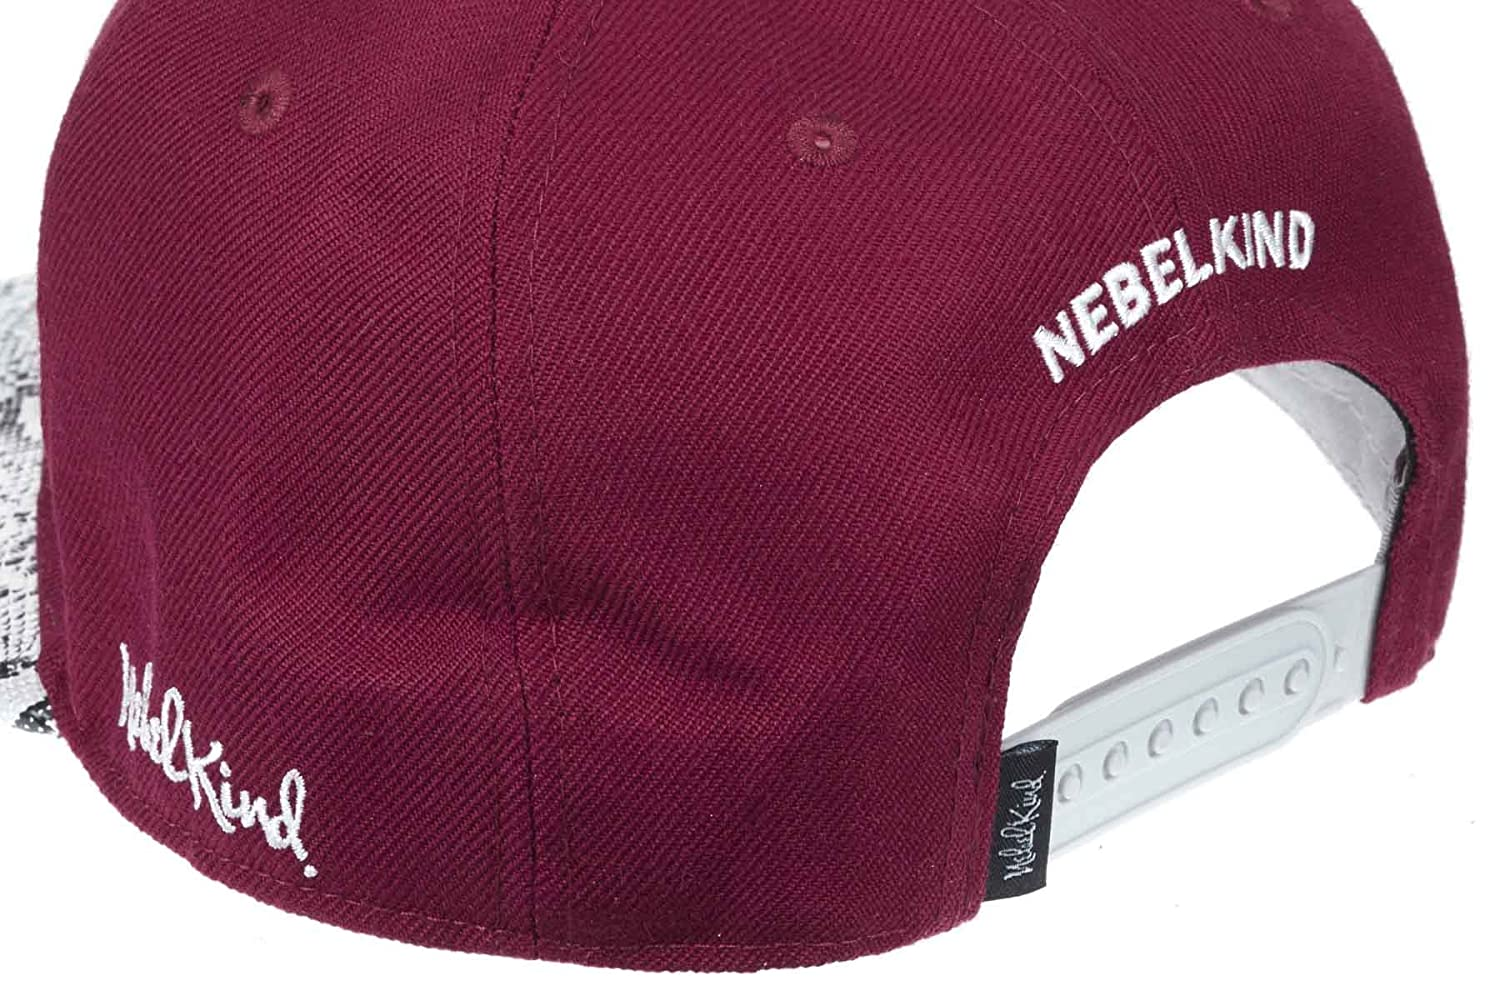 the best attitude fda8c bcb79 Nebelkind Snapback Cap Bordeaux red with Artificial Snake Skin OneSize  Unisex  Amazon.co.uk  Clothing